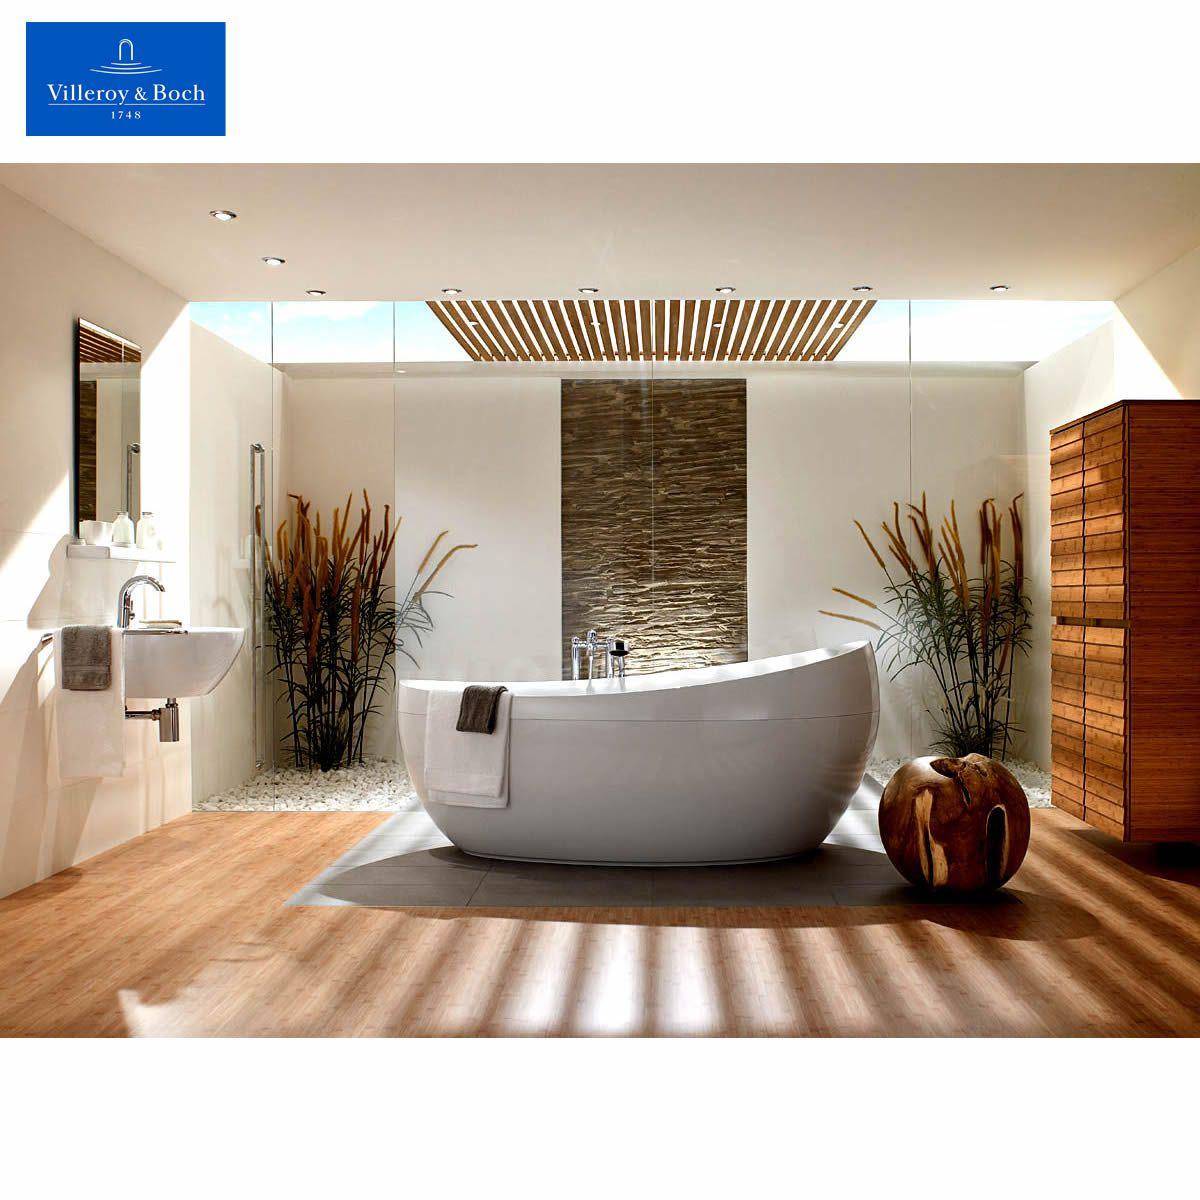 entire villeroy and boch bathrooms uk this manner, you